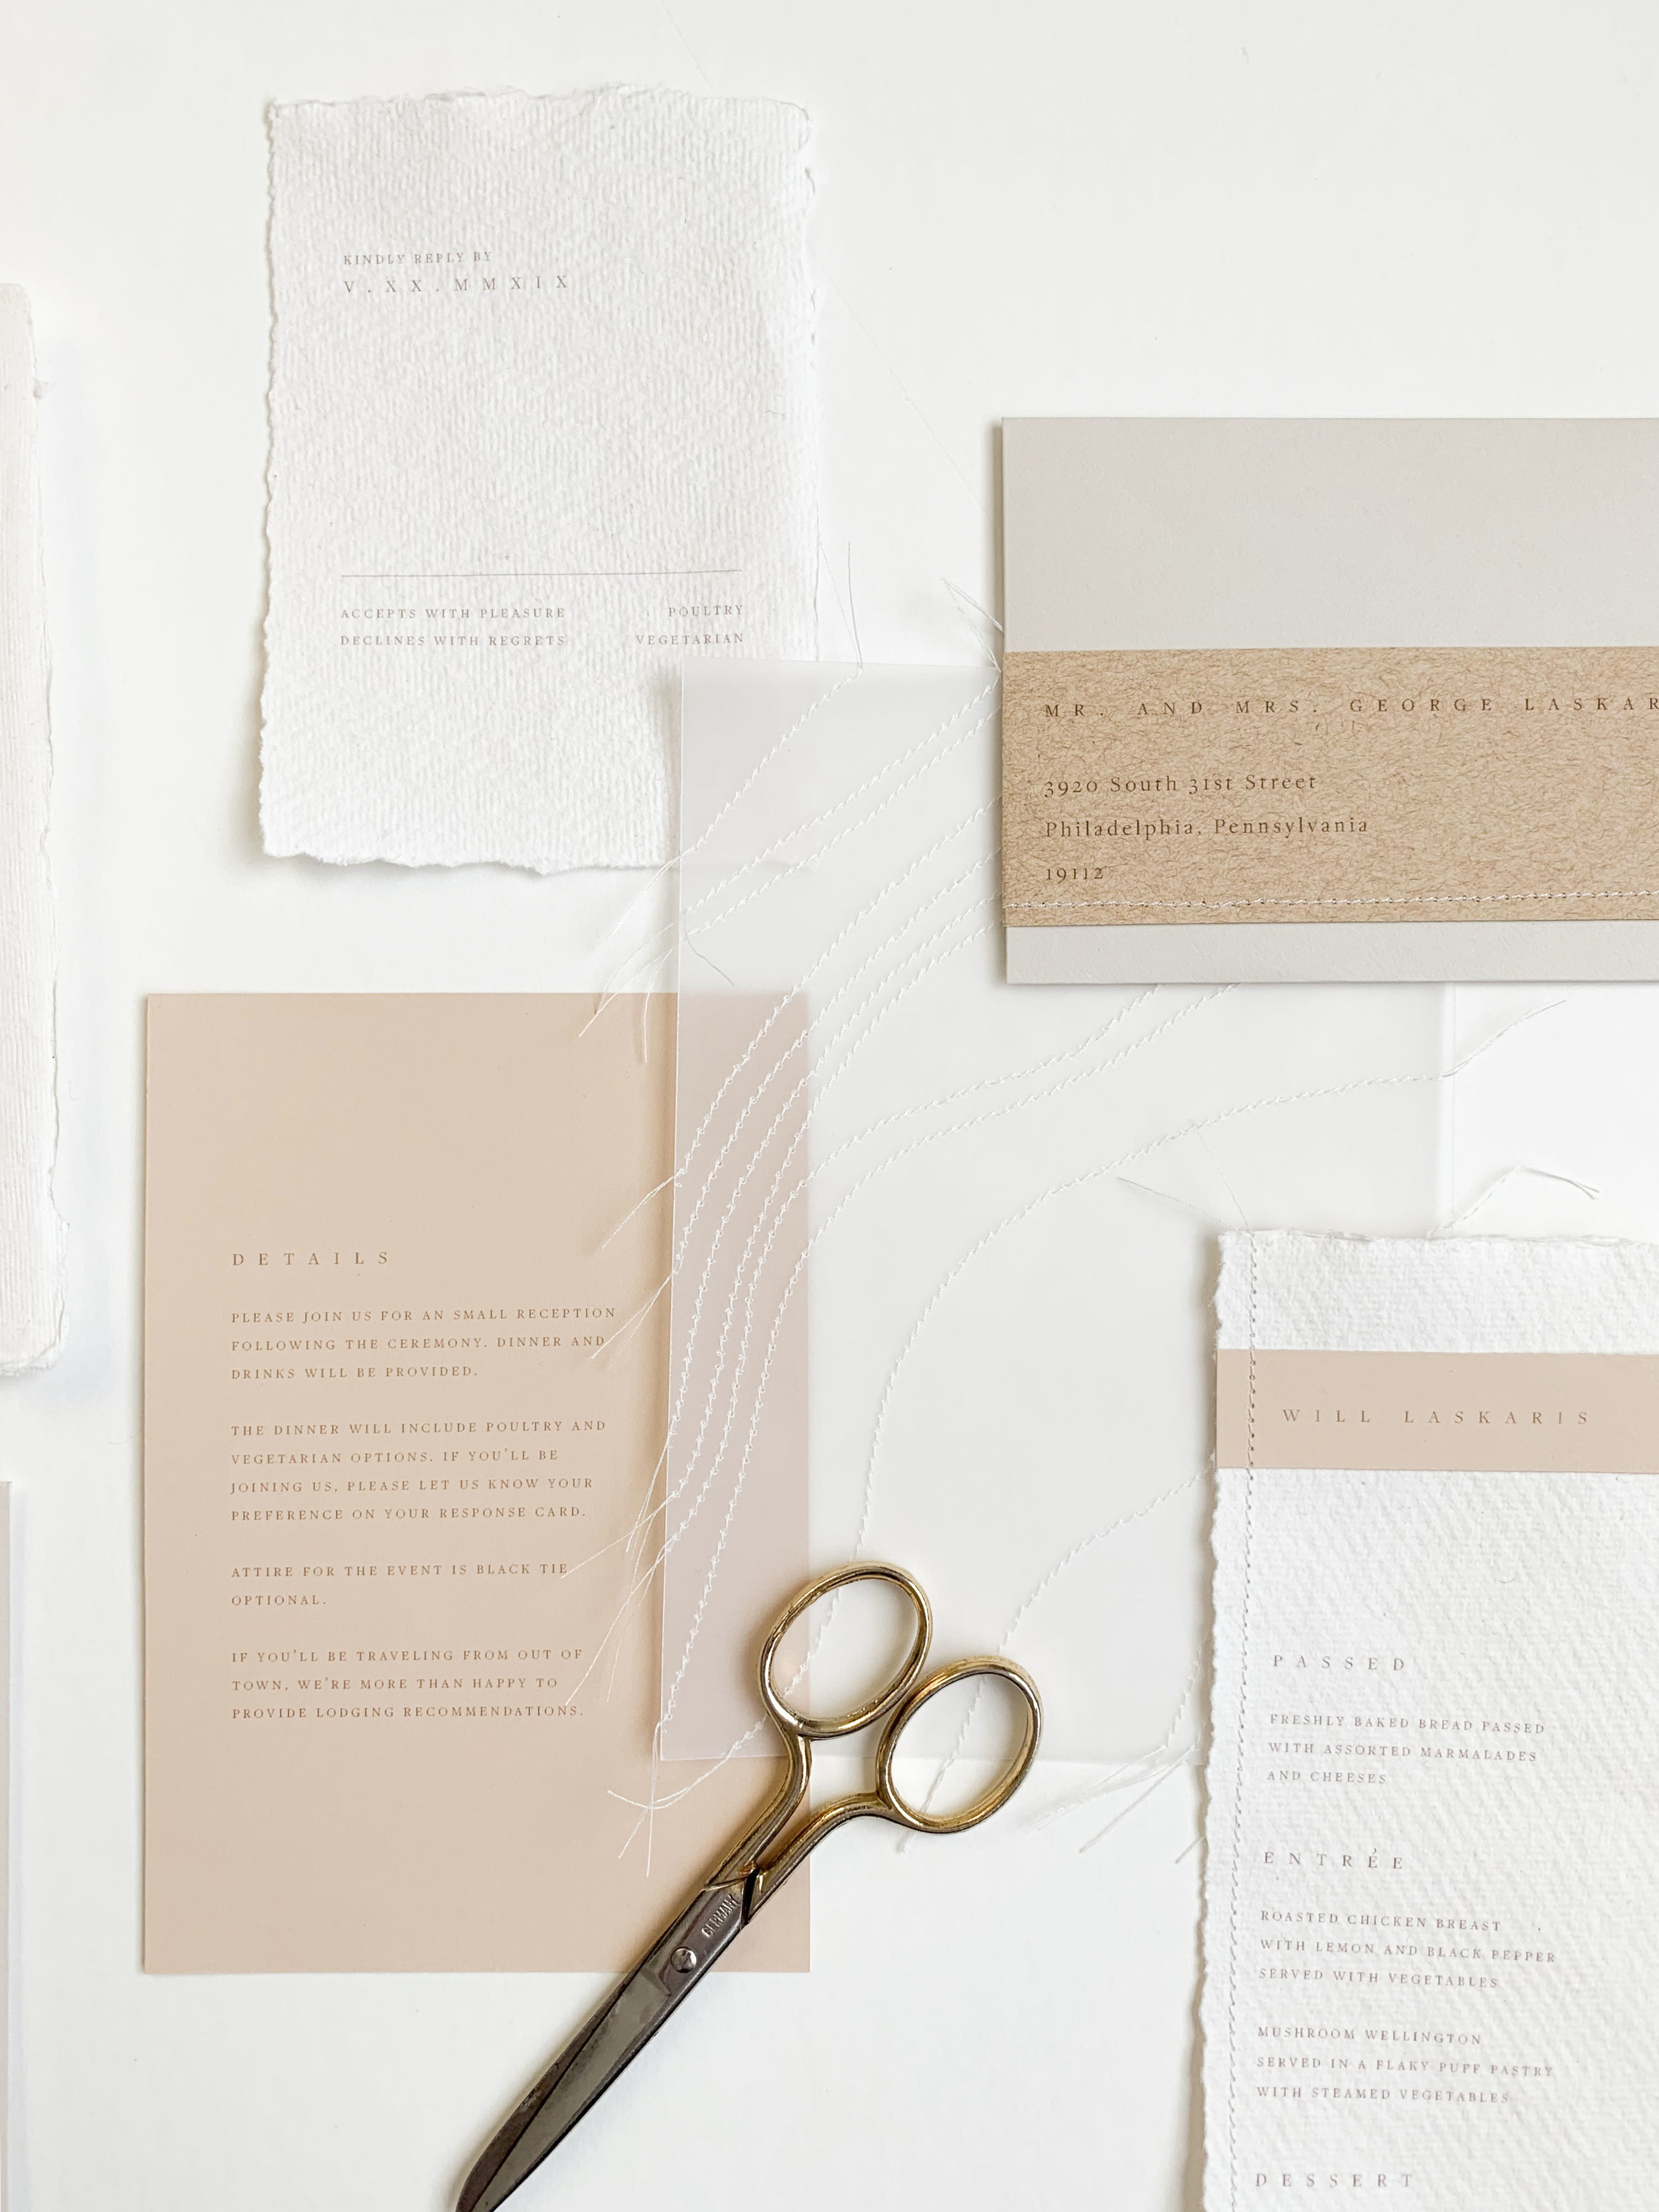 Photo and Stationery by Caitlin O'Bryant Design.